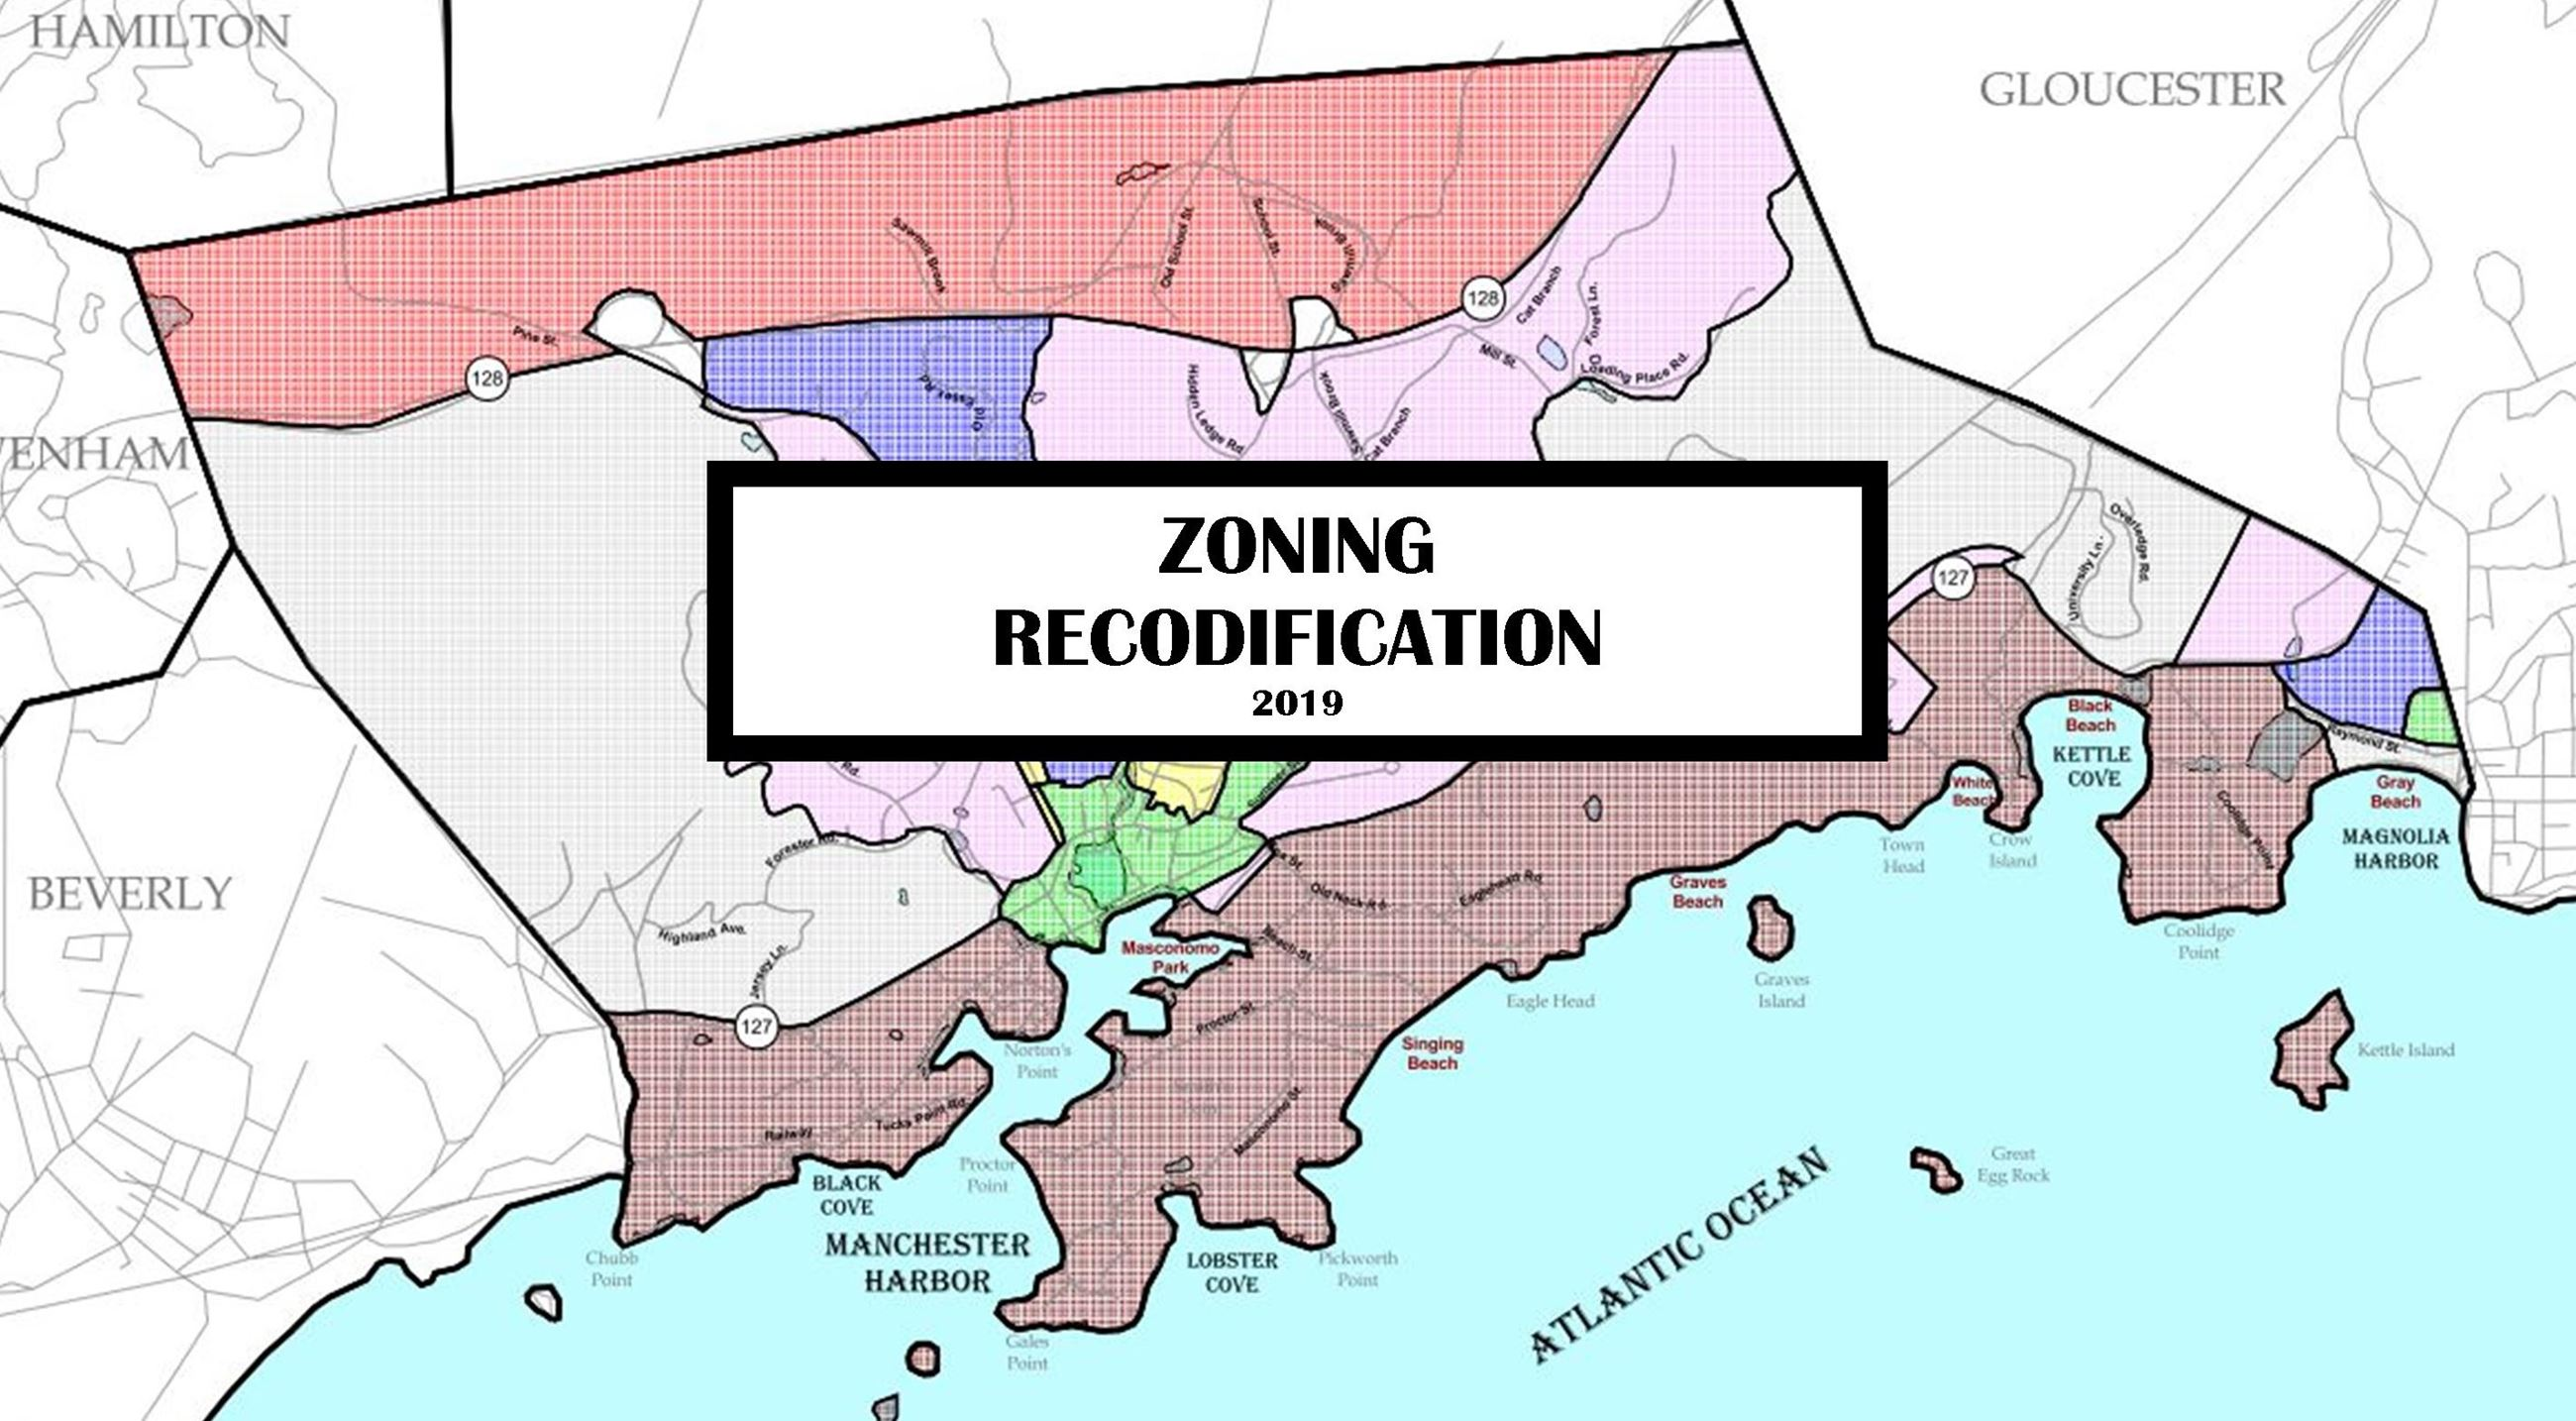 Zoning Recodification Initiative 2019